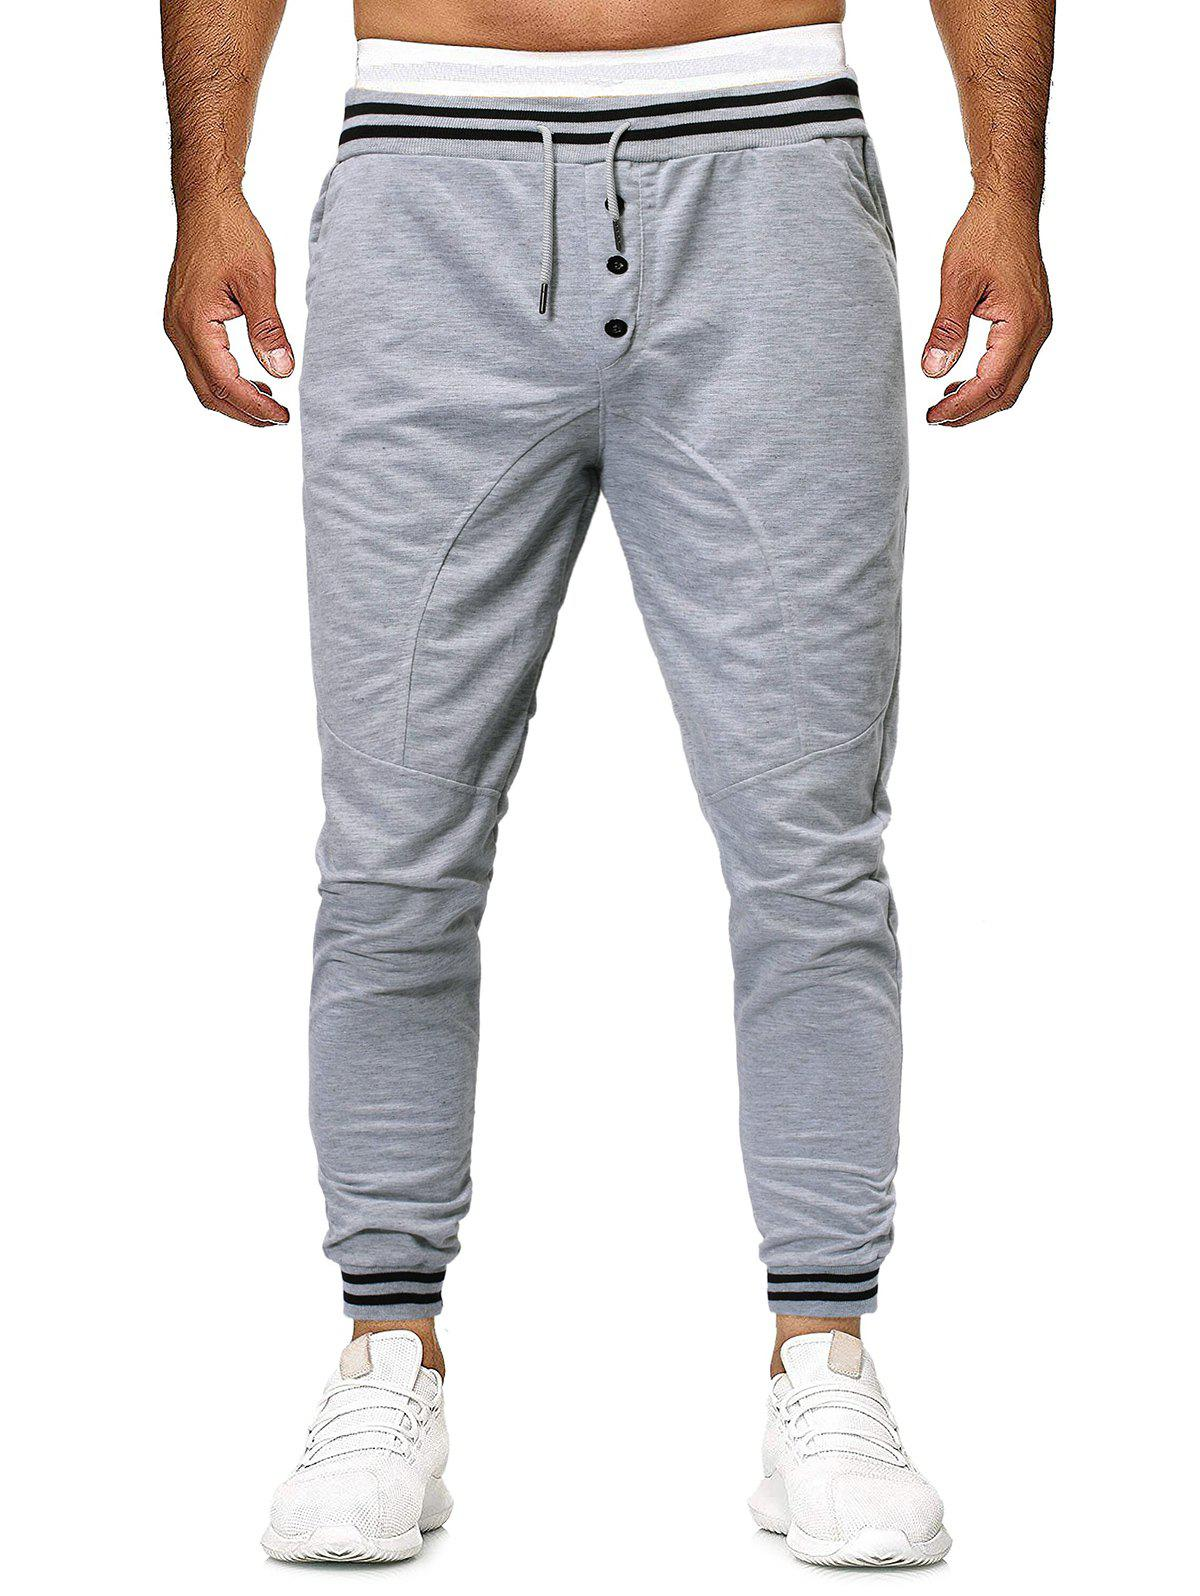 Online Striped Buttons Casual Drawstring Jogger Pants